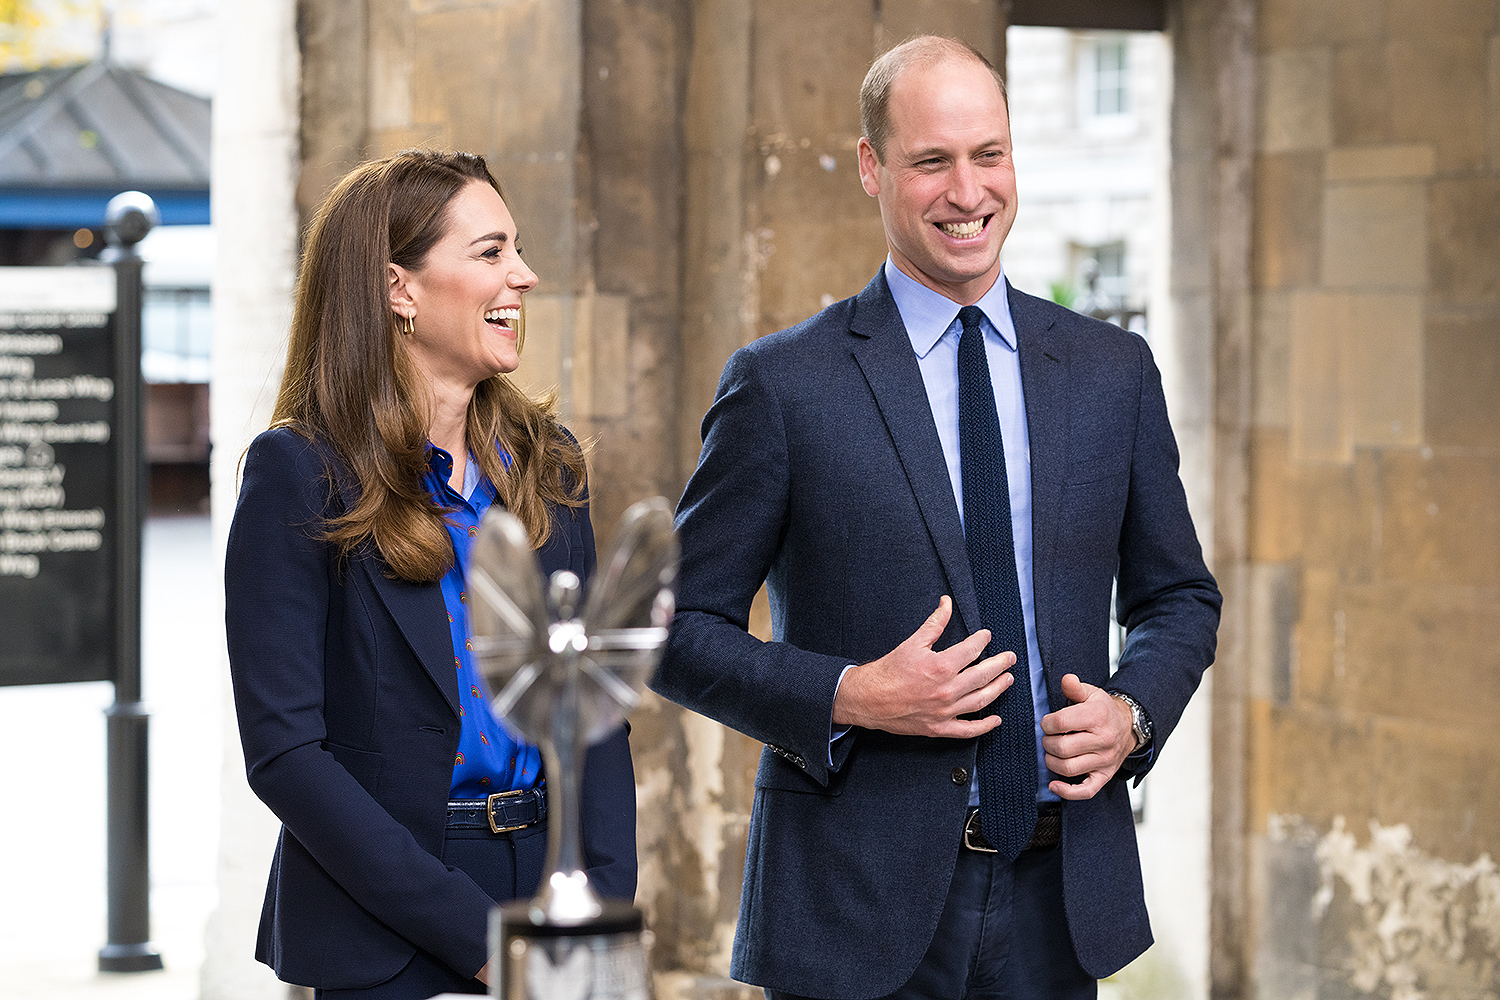 Kate Middleton and Prince William meeting the finalists of her Hold Still photography project